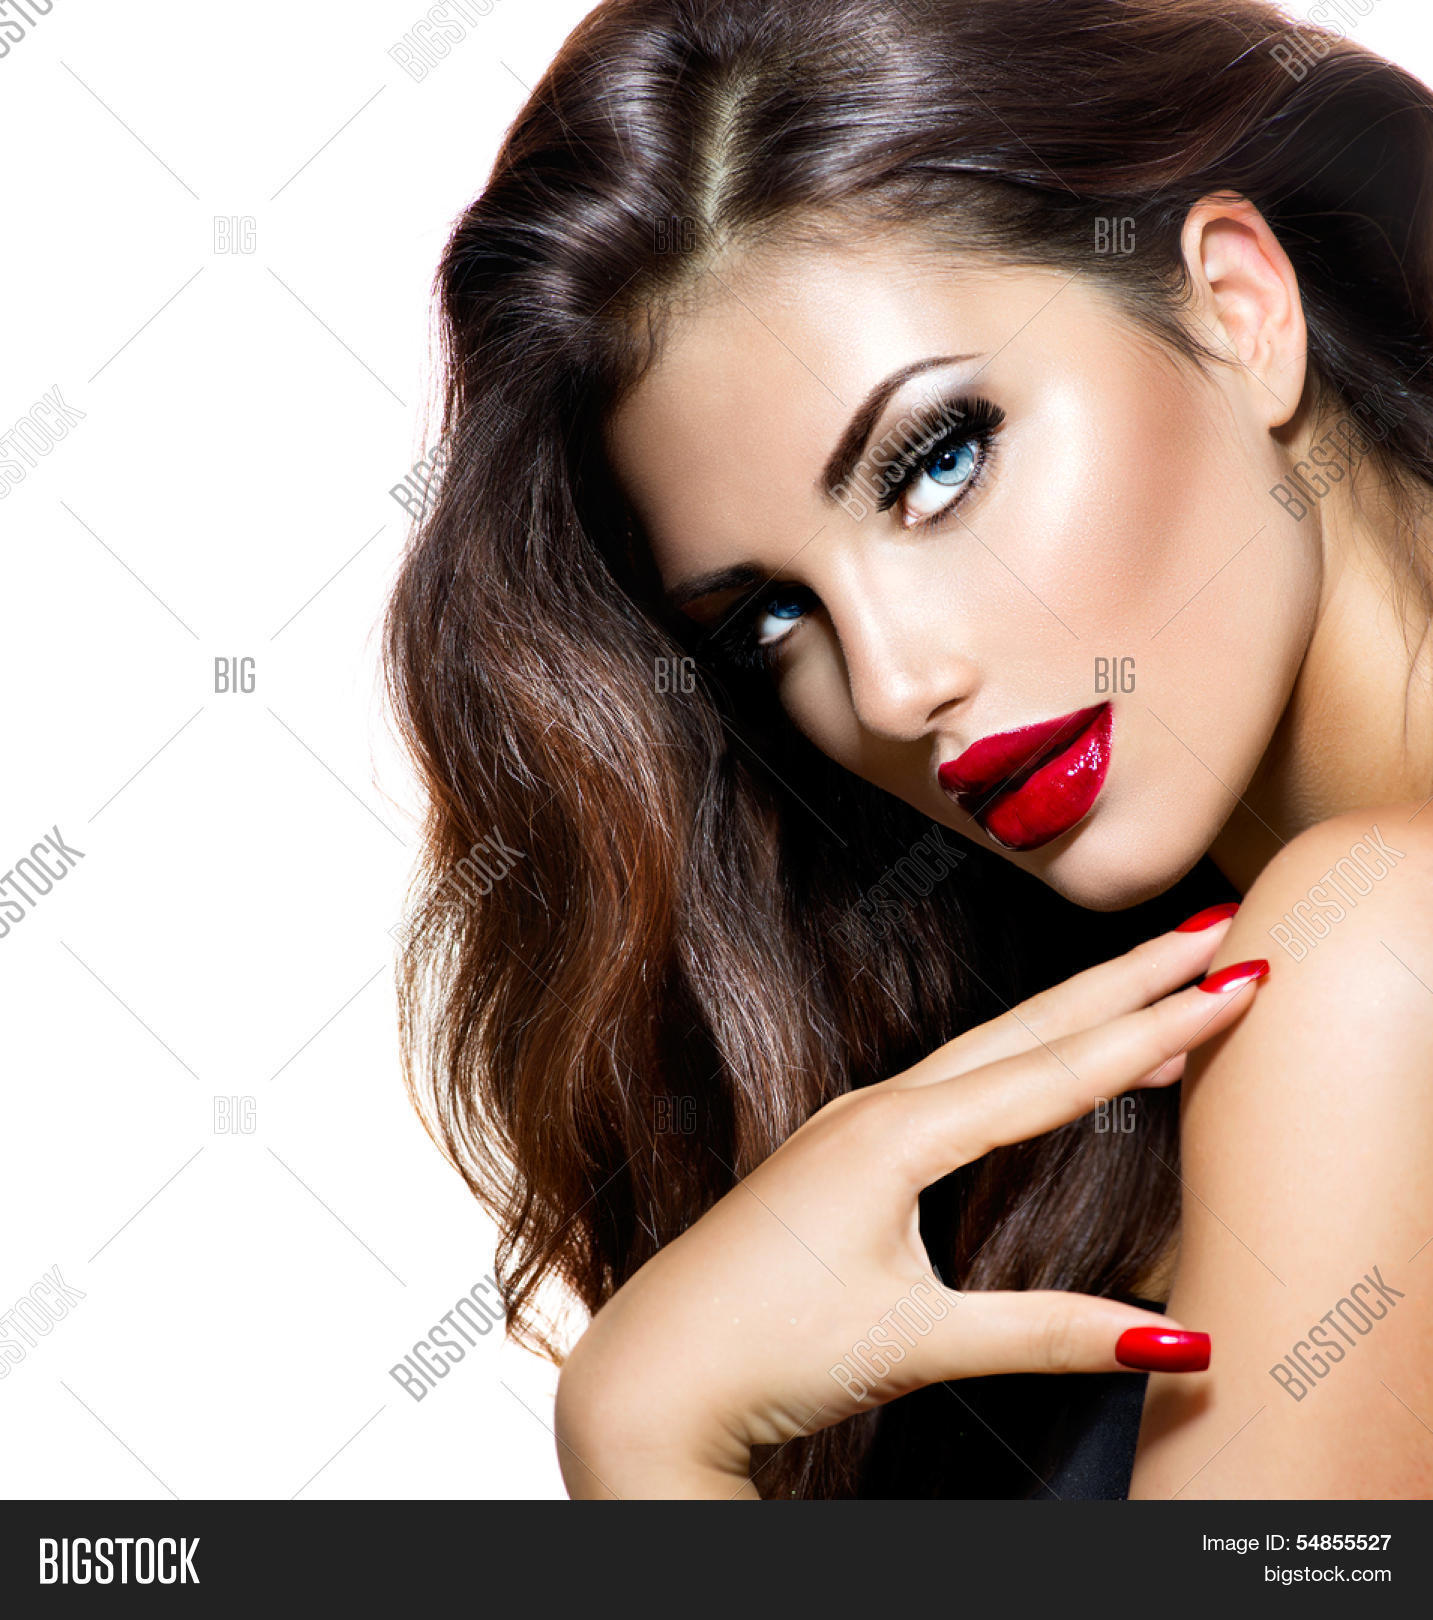 Sexy Beauty Girl Red Lips Nails Image  Photo  Bigstock-5596